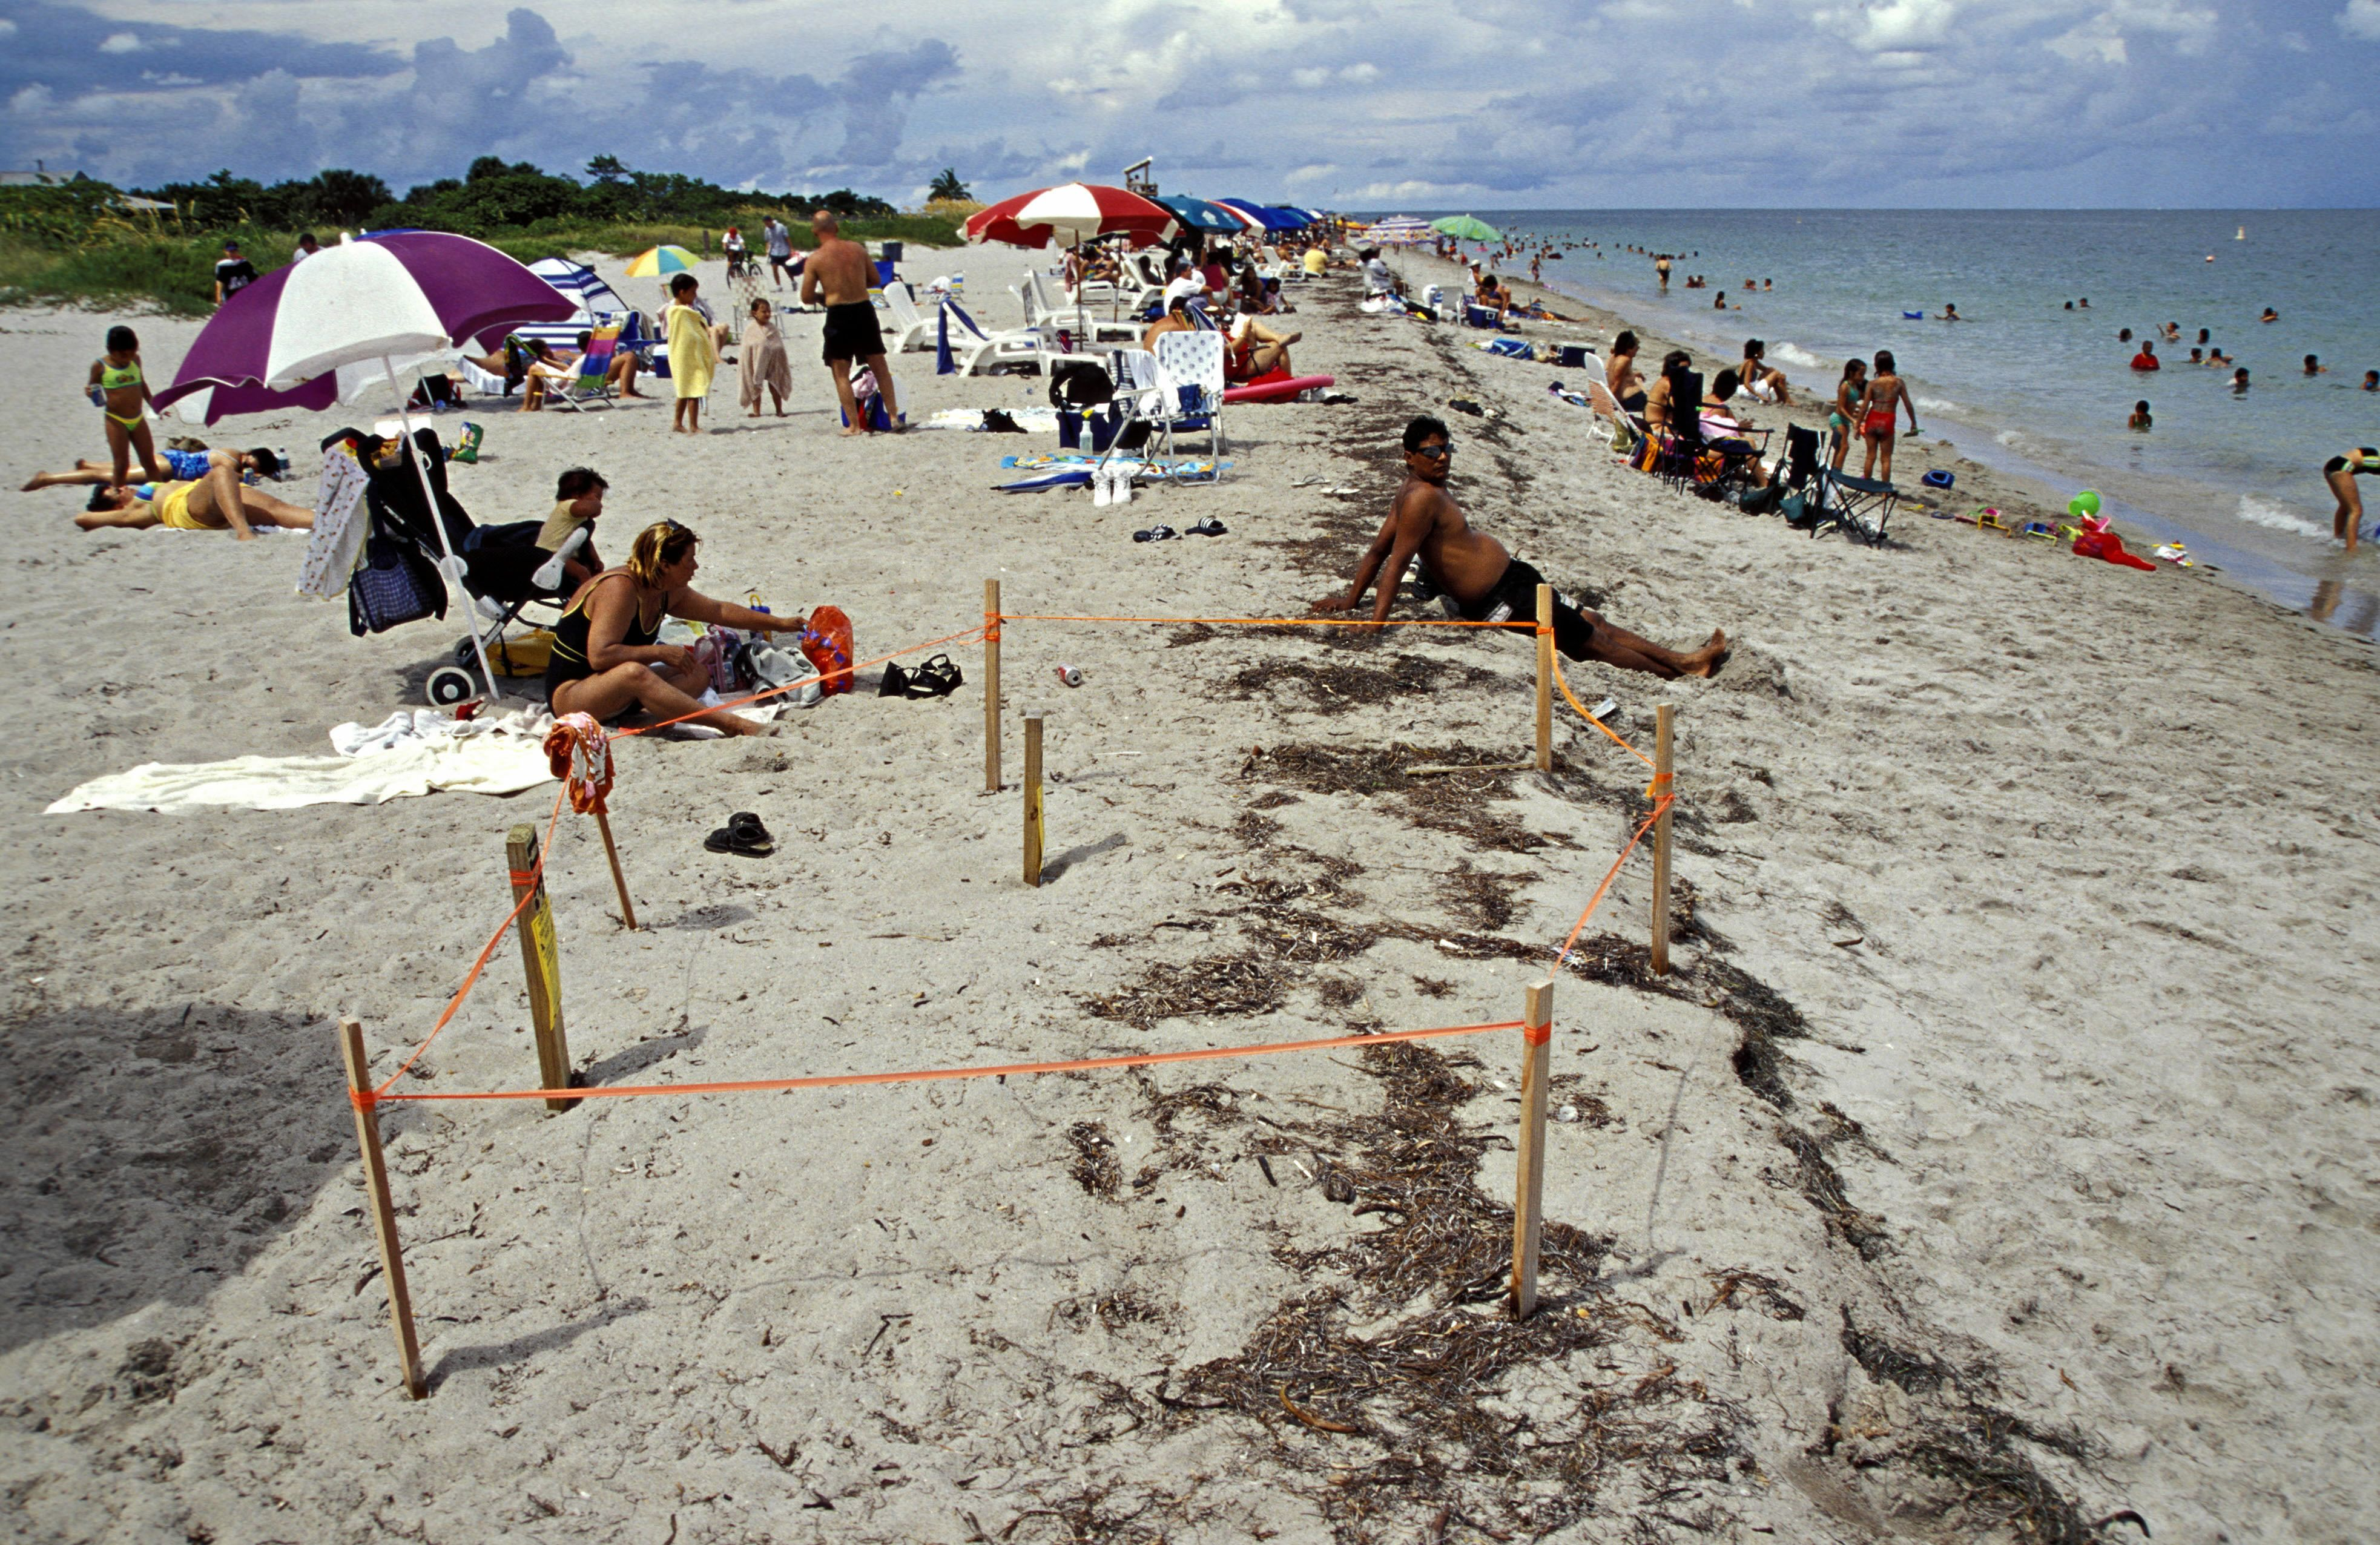 Protected sea turtle nest site on crowded beach in Key Biscayne, FL